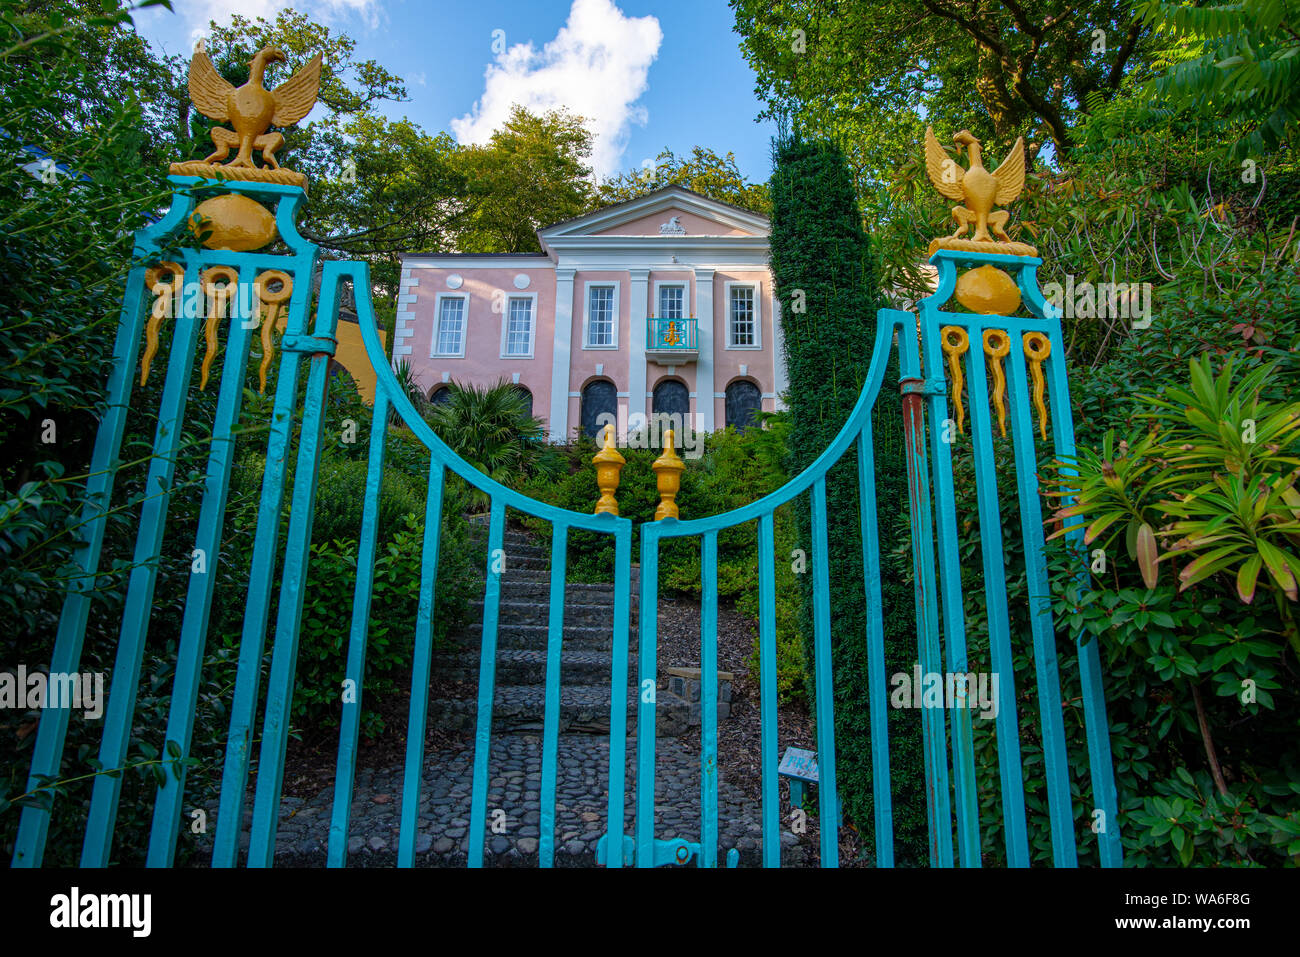 Penrhyndeudraeth, Wales, UK - Aug 15, 2019: Palladian inspired building at the Portmeirion village and pinned steel gate with no people Stock Photo